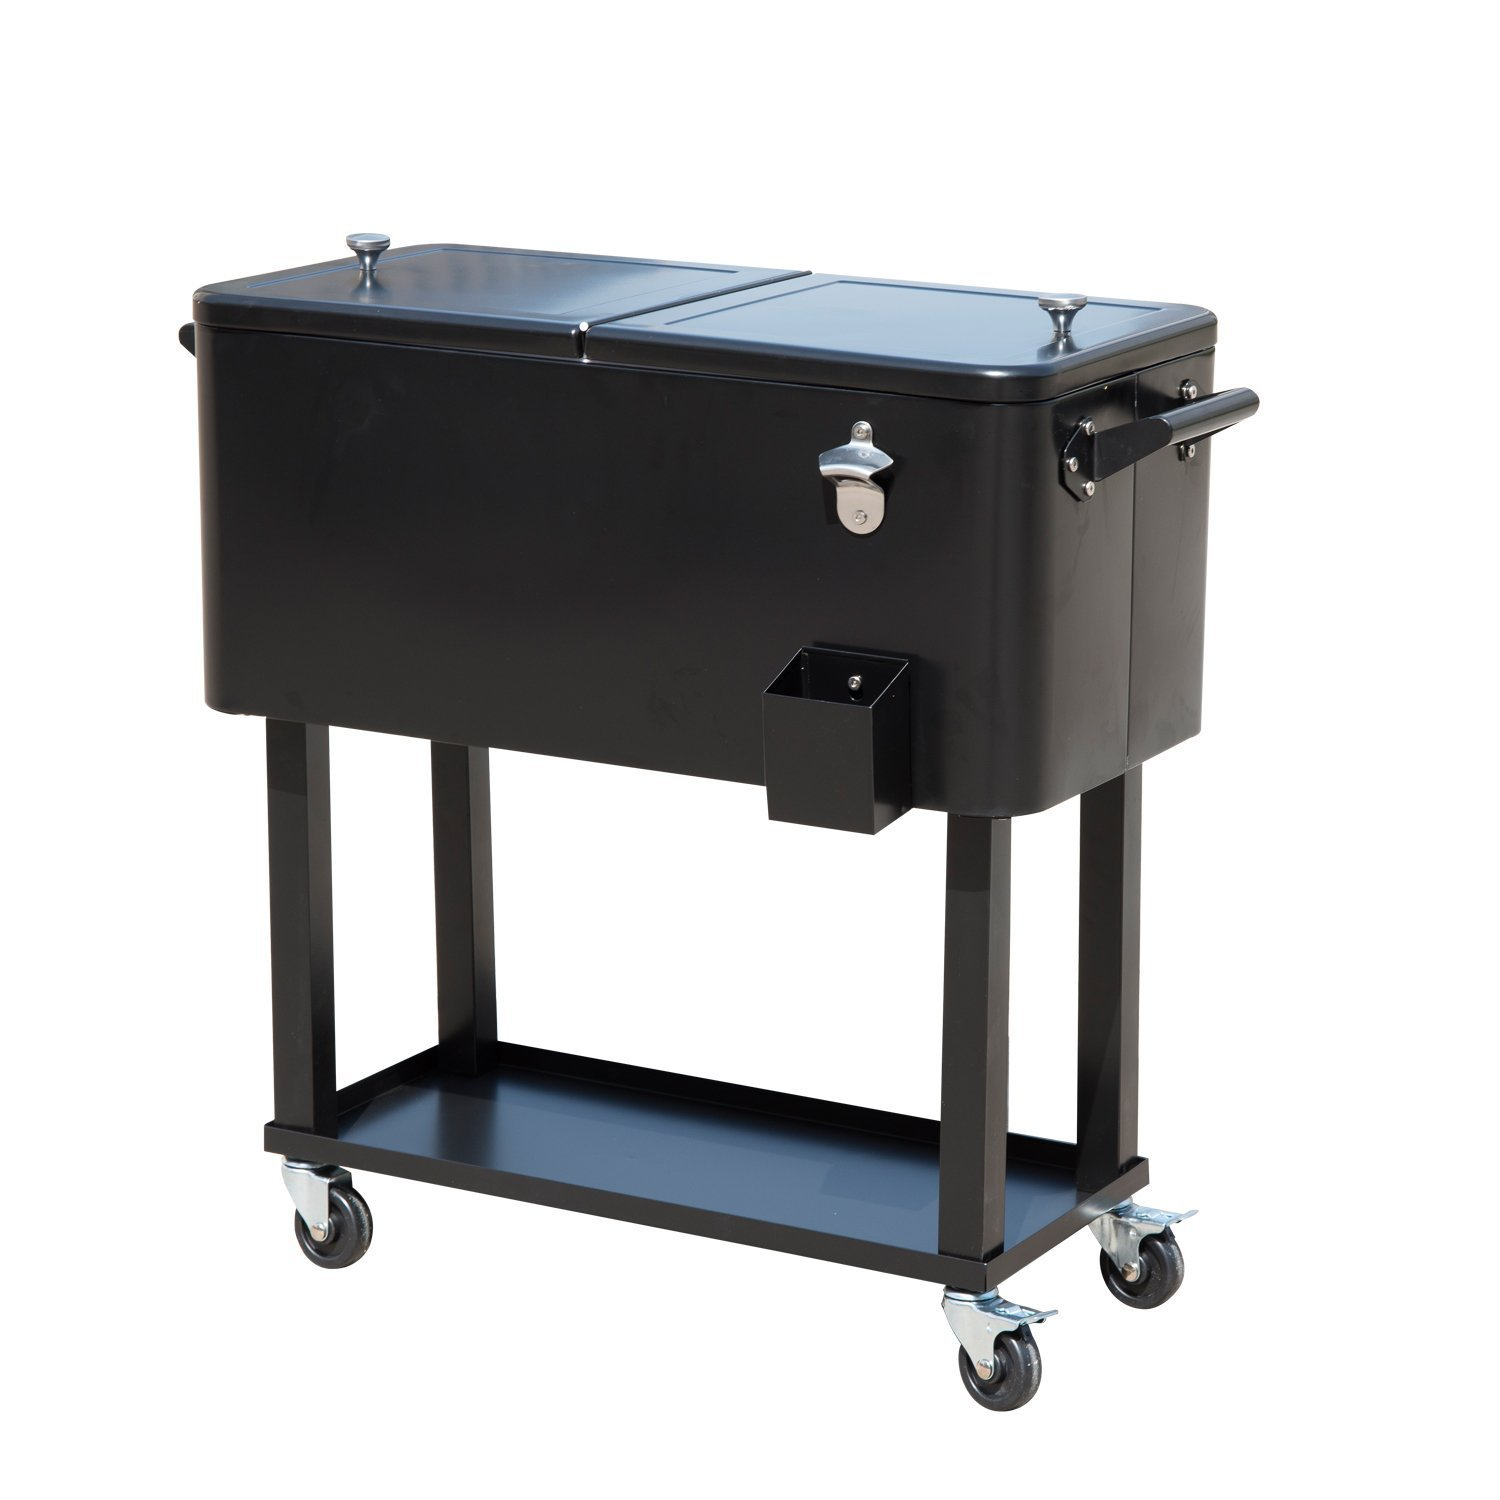 Amazon.com : Outsunny 80 QT Rolling Ice Chest Portable Patio Party Drink  Cooler Cart   Black : Garden U0026 Outdoor